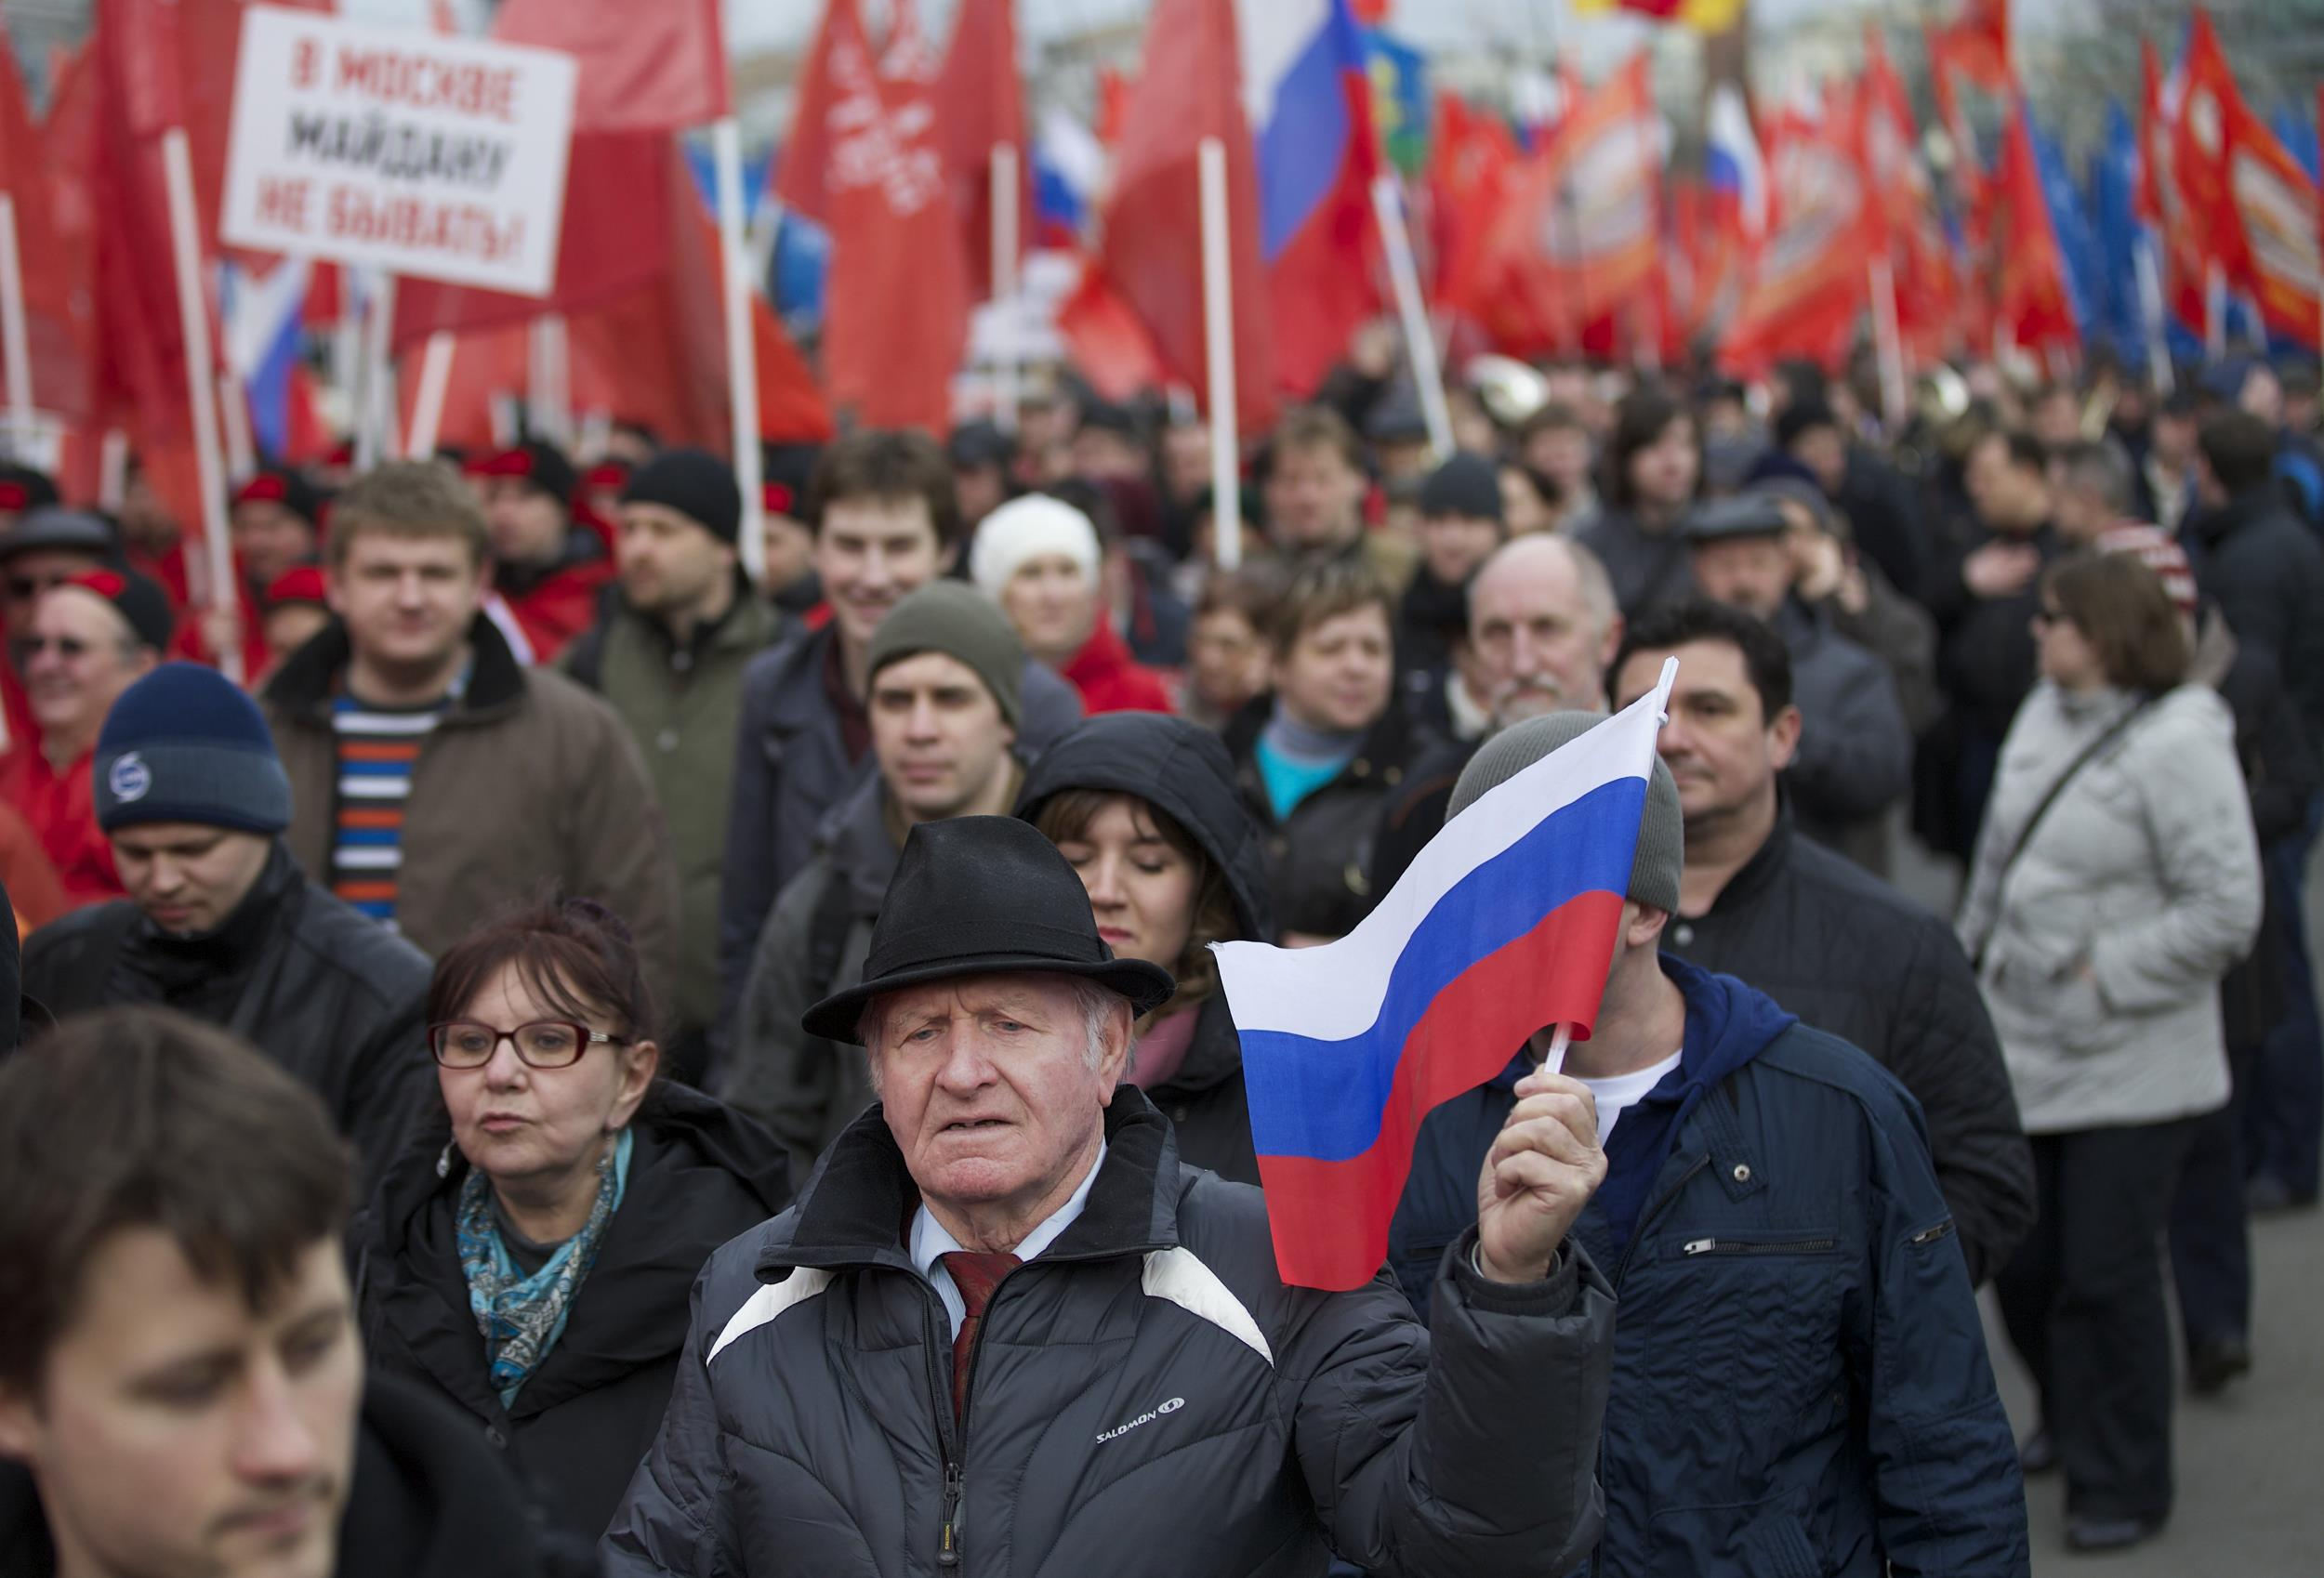 Image: Demonstrators march in support of Kremlin-backed plans for the Ukrainian province of Crimea to break away and merge with Russia, in Moscow